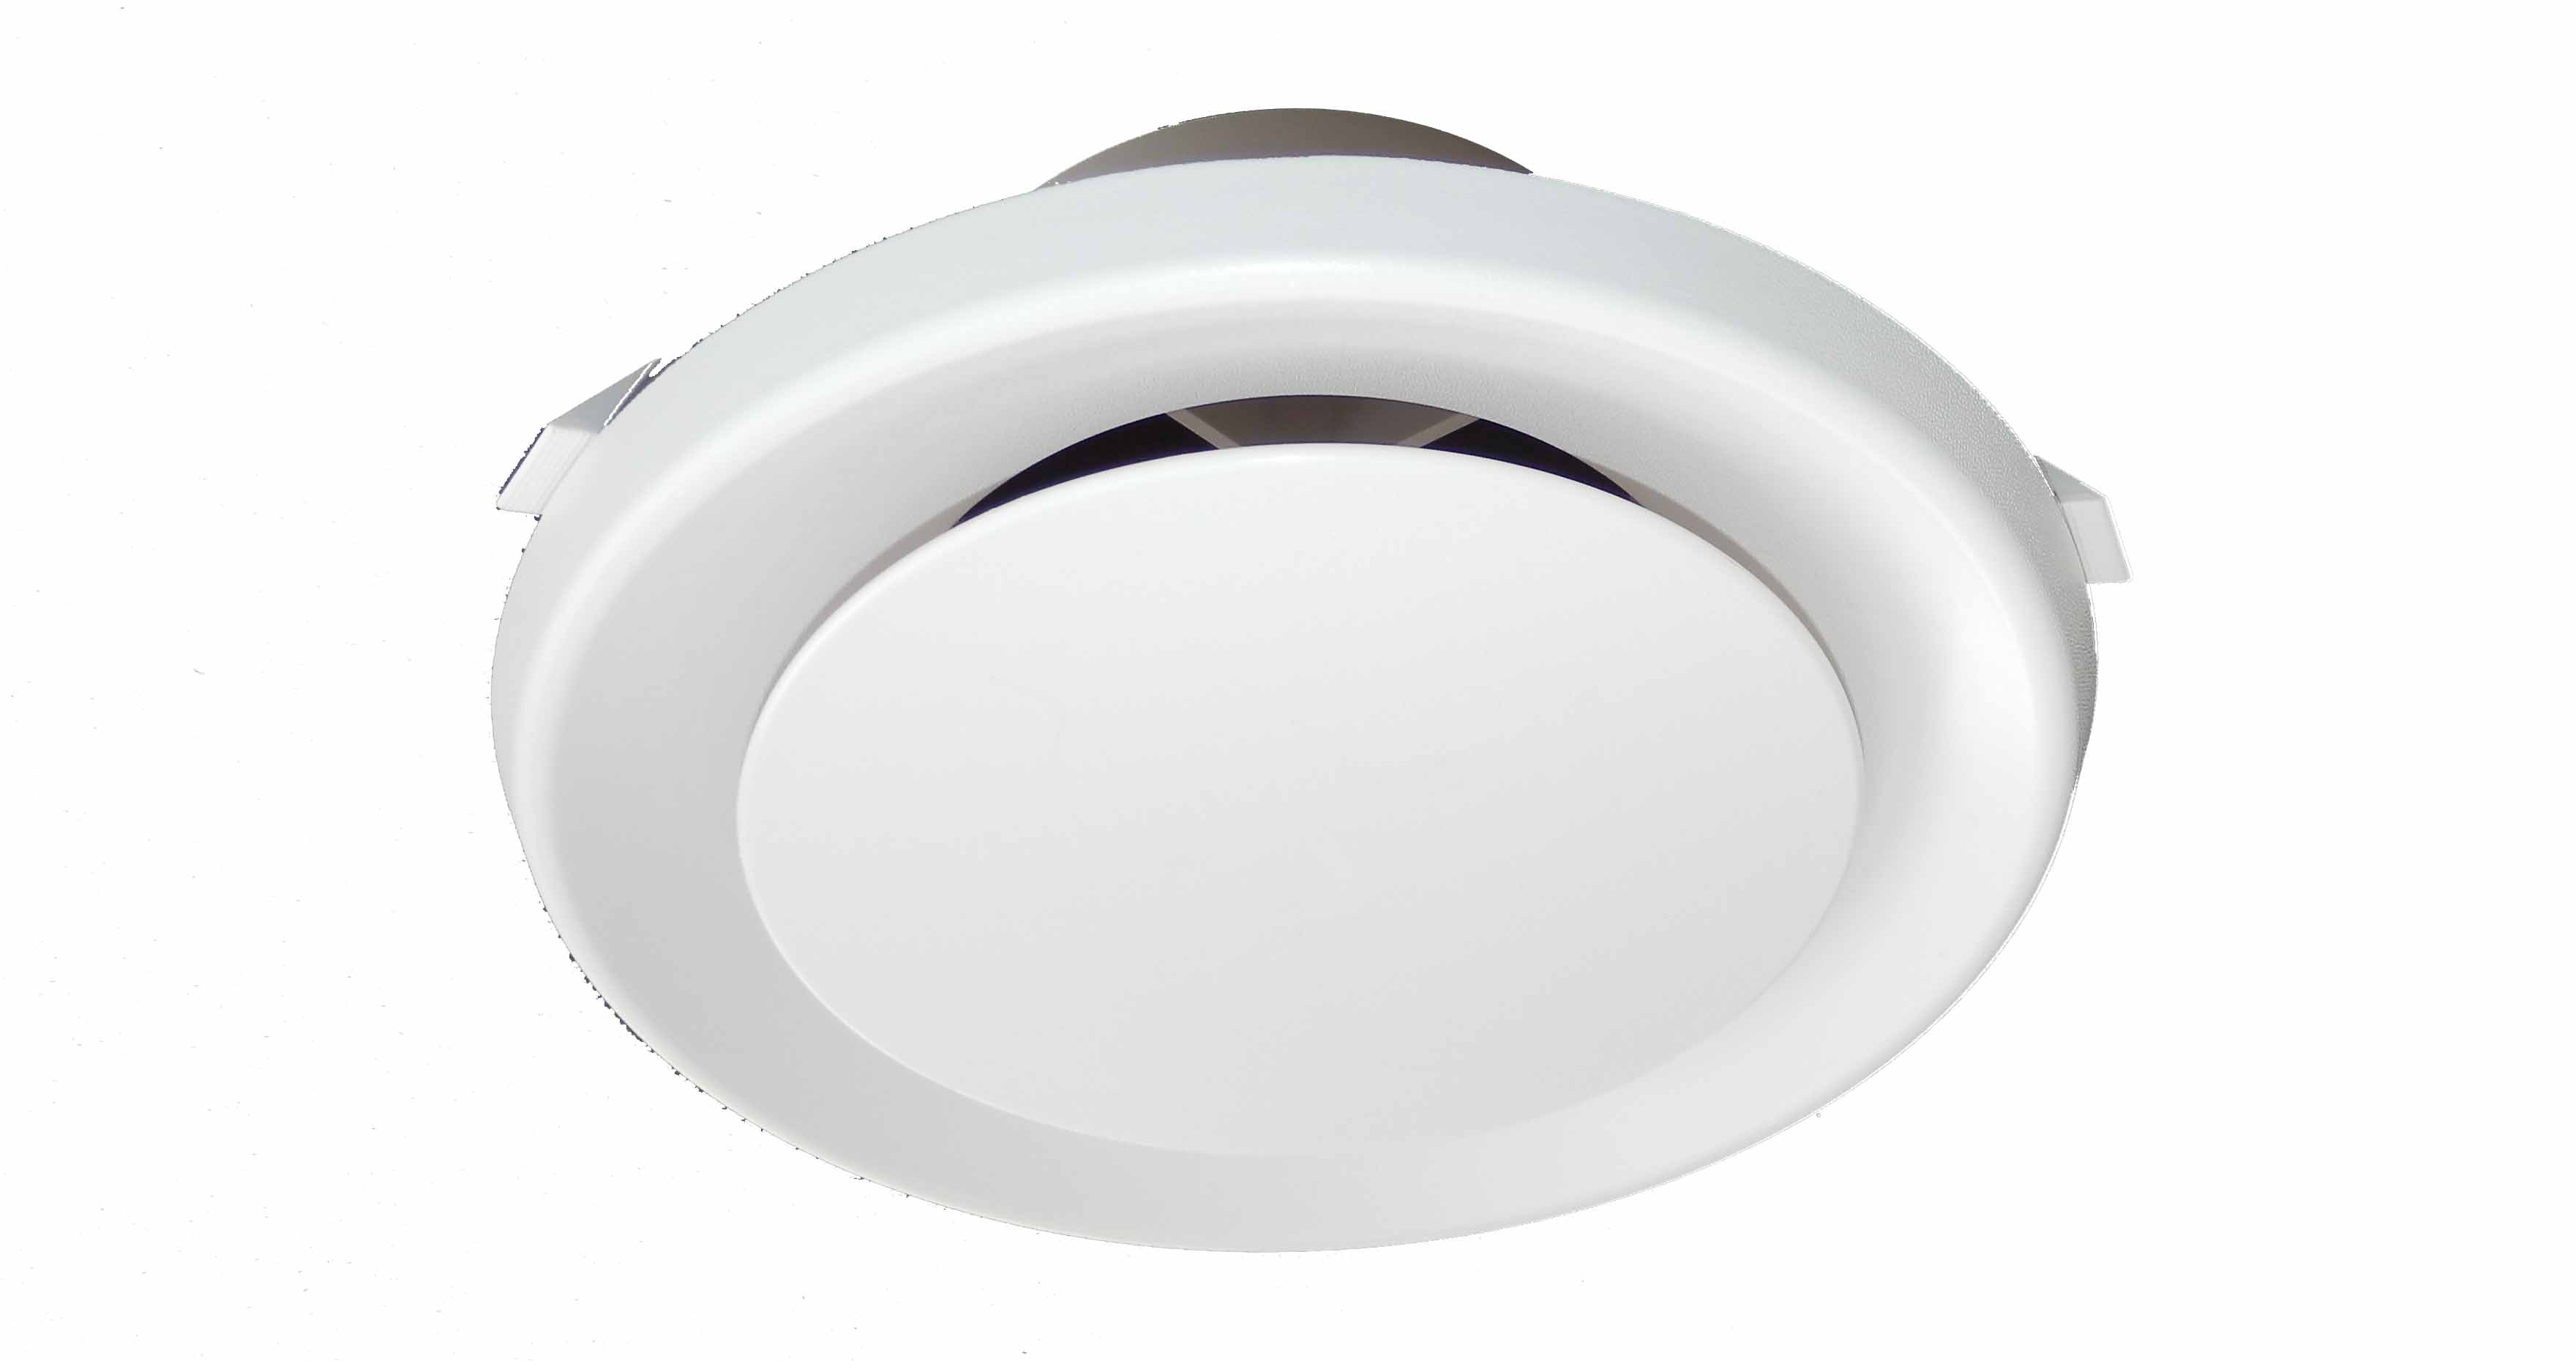 Pycd200 237100 Round Ceiling Diffuser 200dia S 77 05 Pycd250